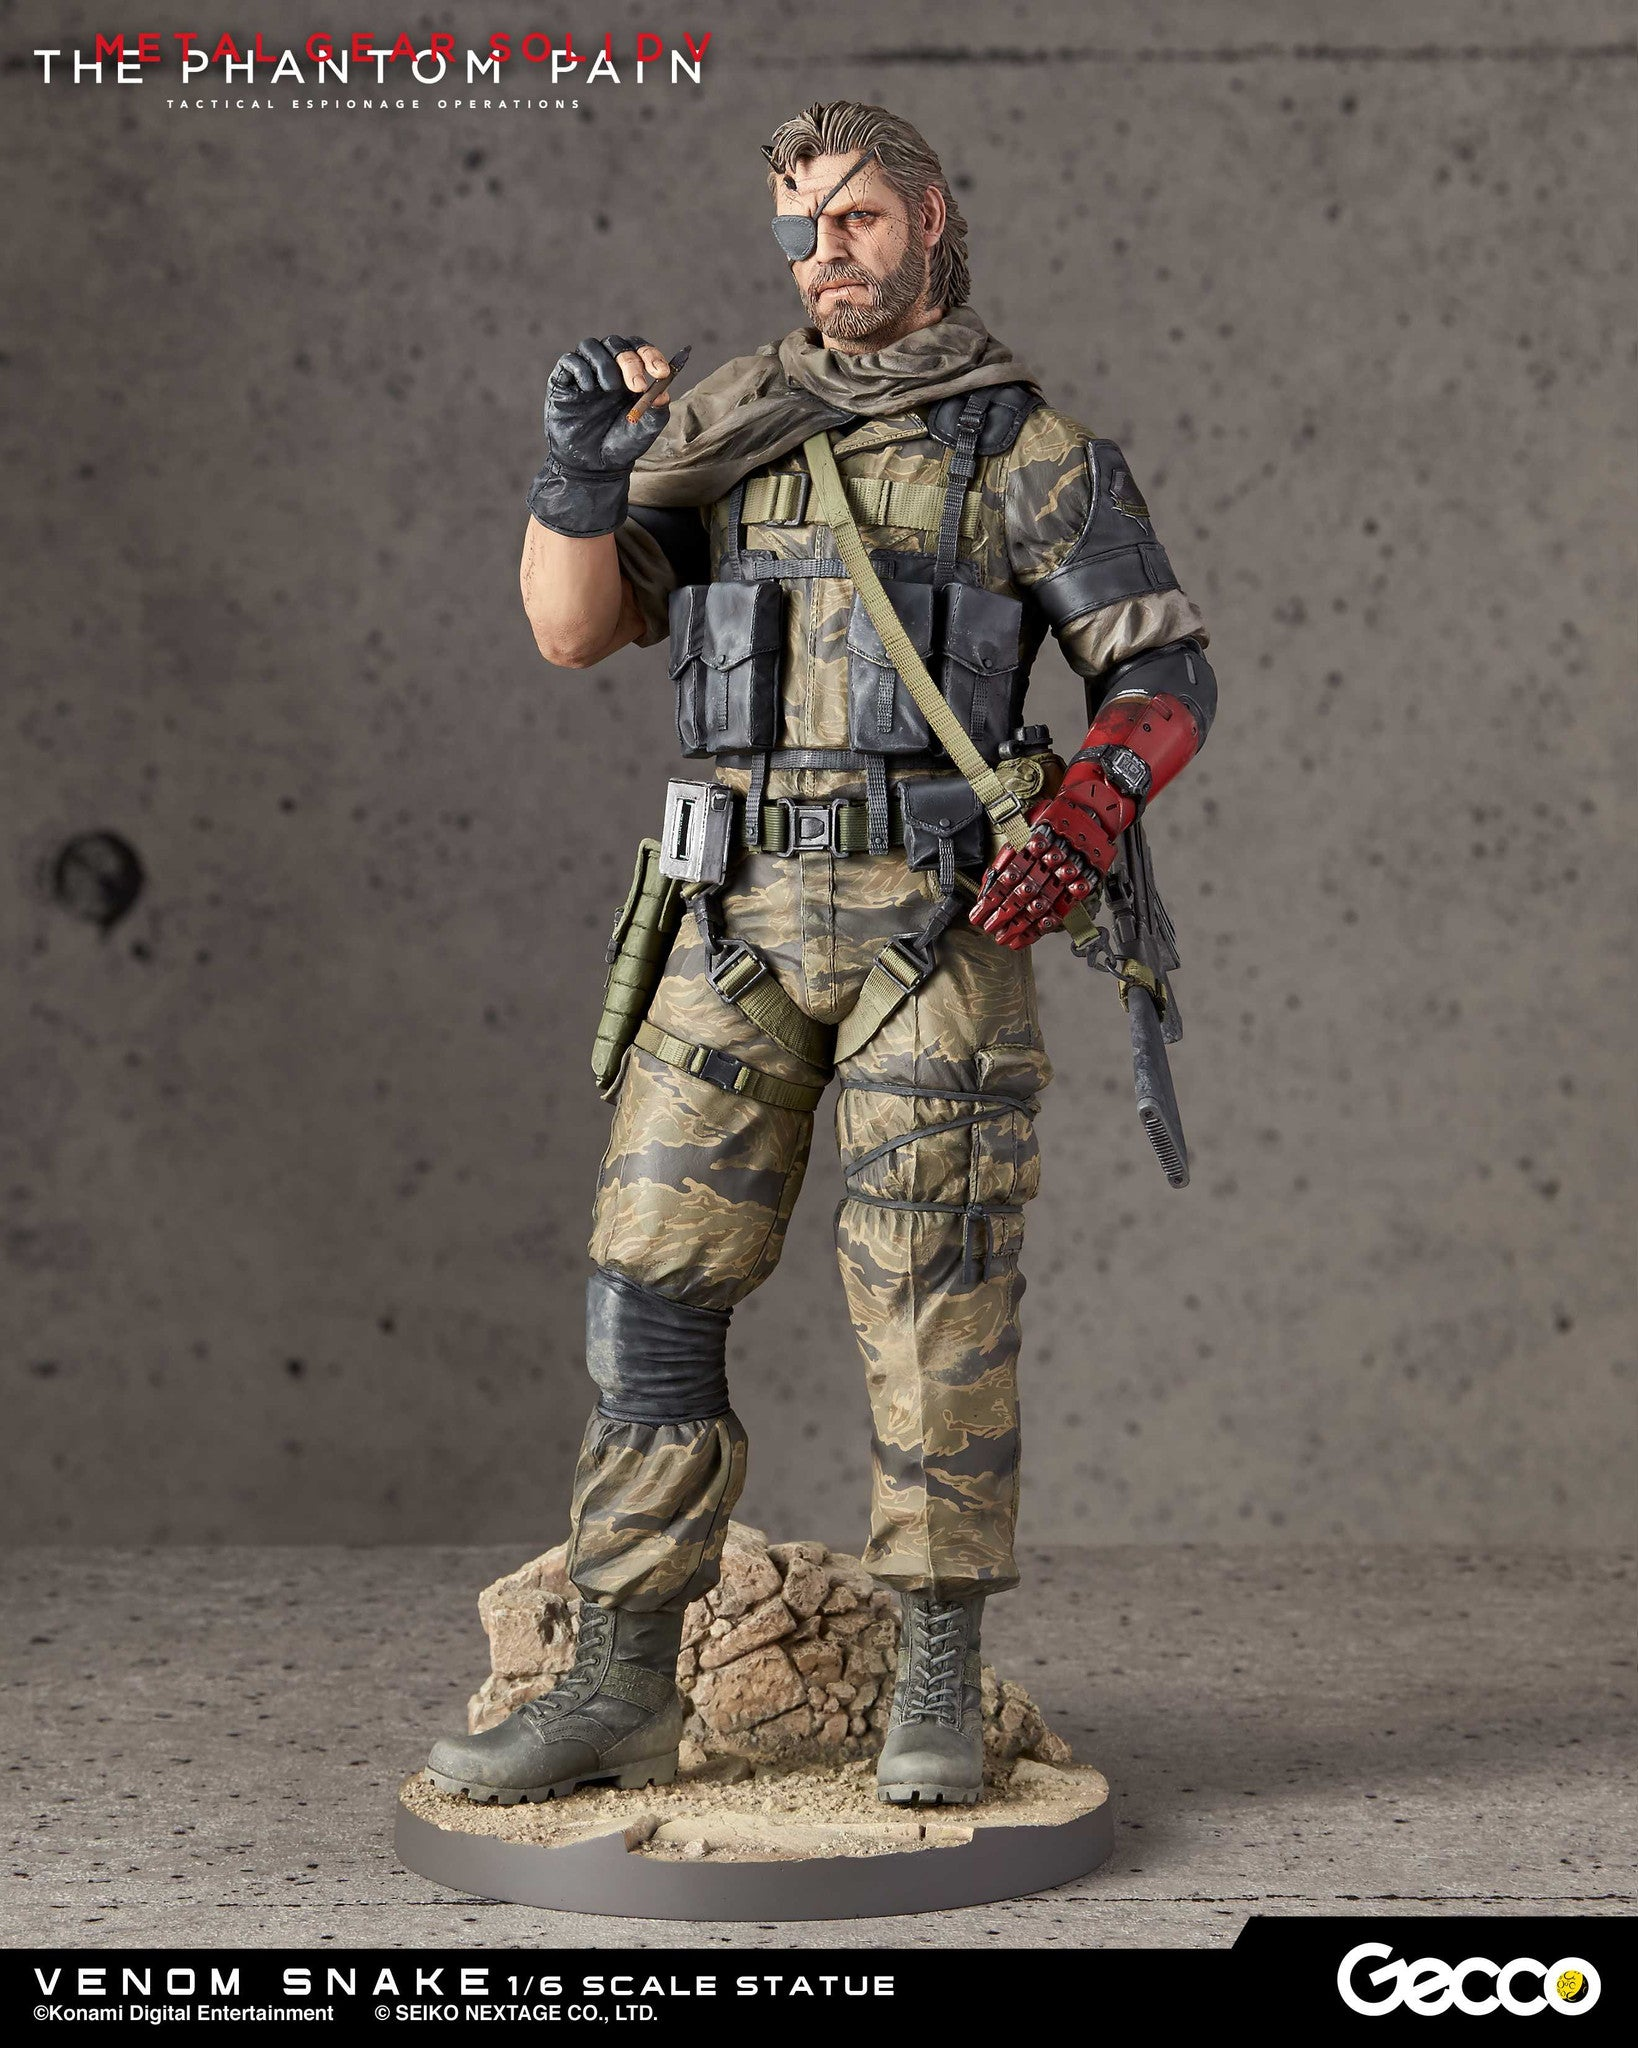 Gecco - Metal Gear Solid V: The Phantom Pain - Venom Snake 1/6 Scale Statue - Marvelous Toys - 7